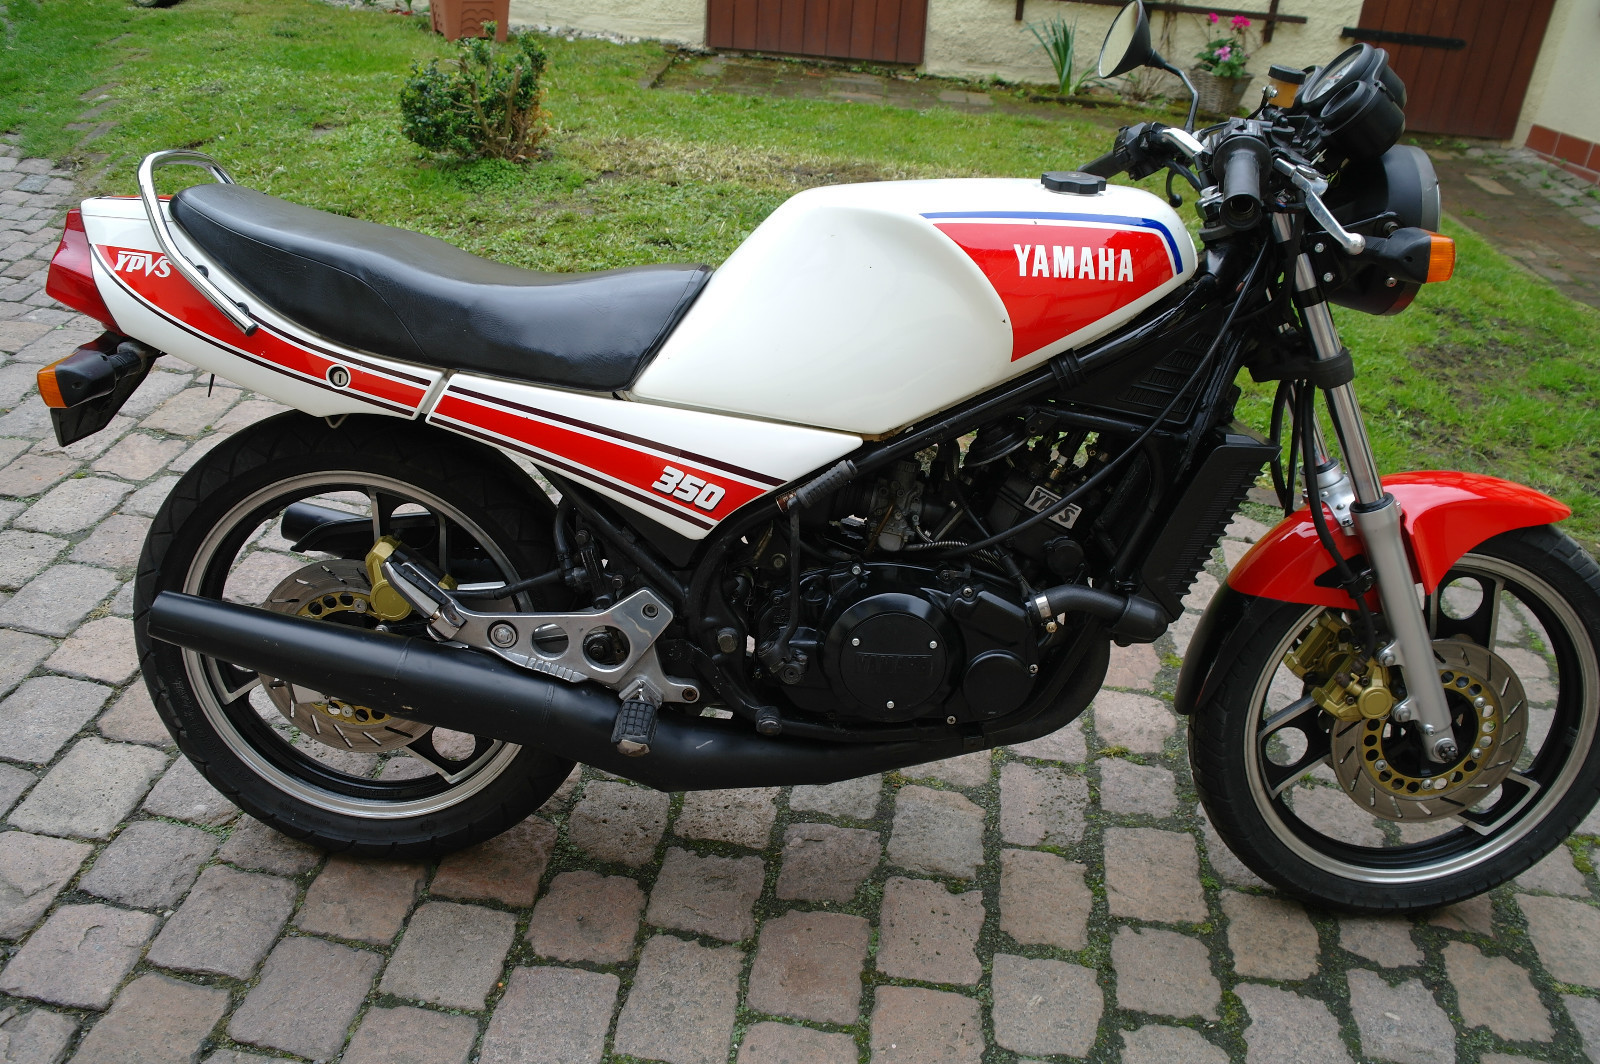 choose 1 out of 4 yamaha rd 350 germany rare sportbikes for sale. Black Bedroom Furniture Sets. Home Design Ideas